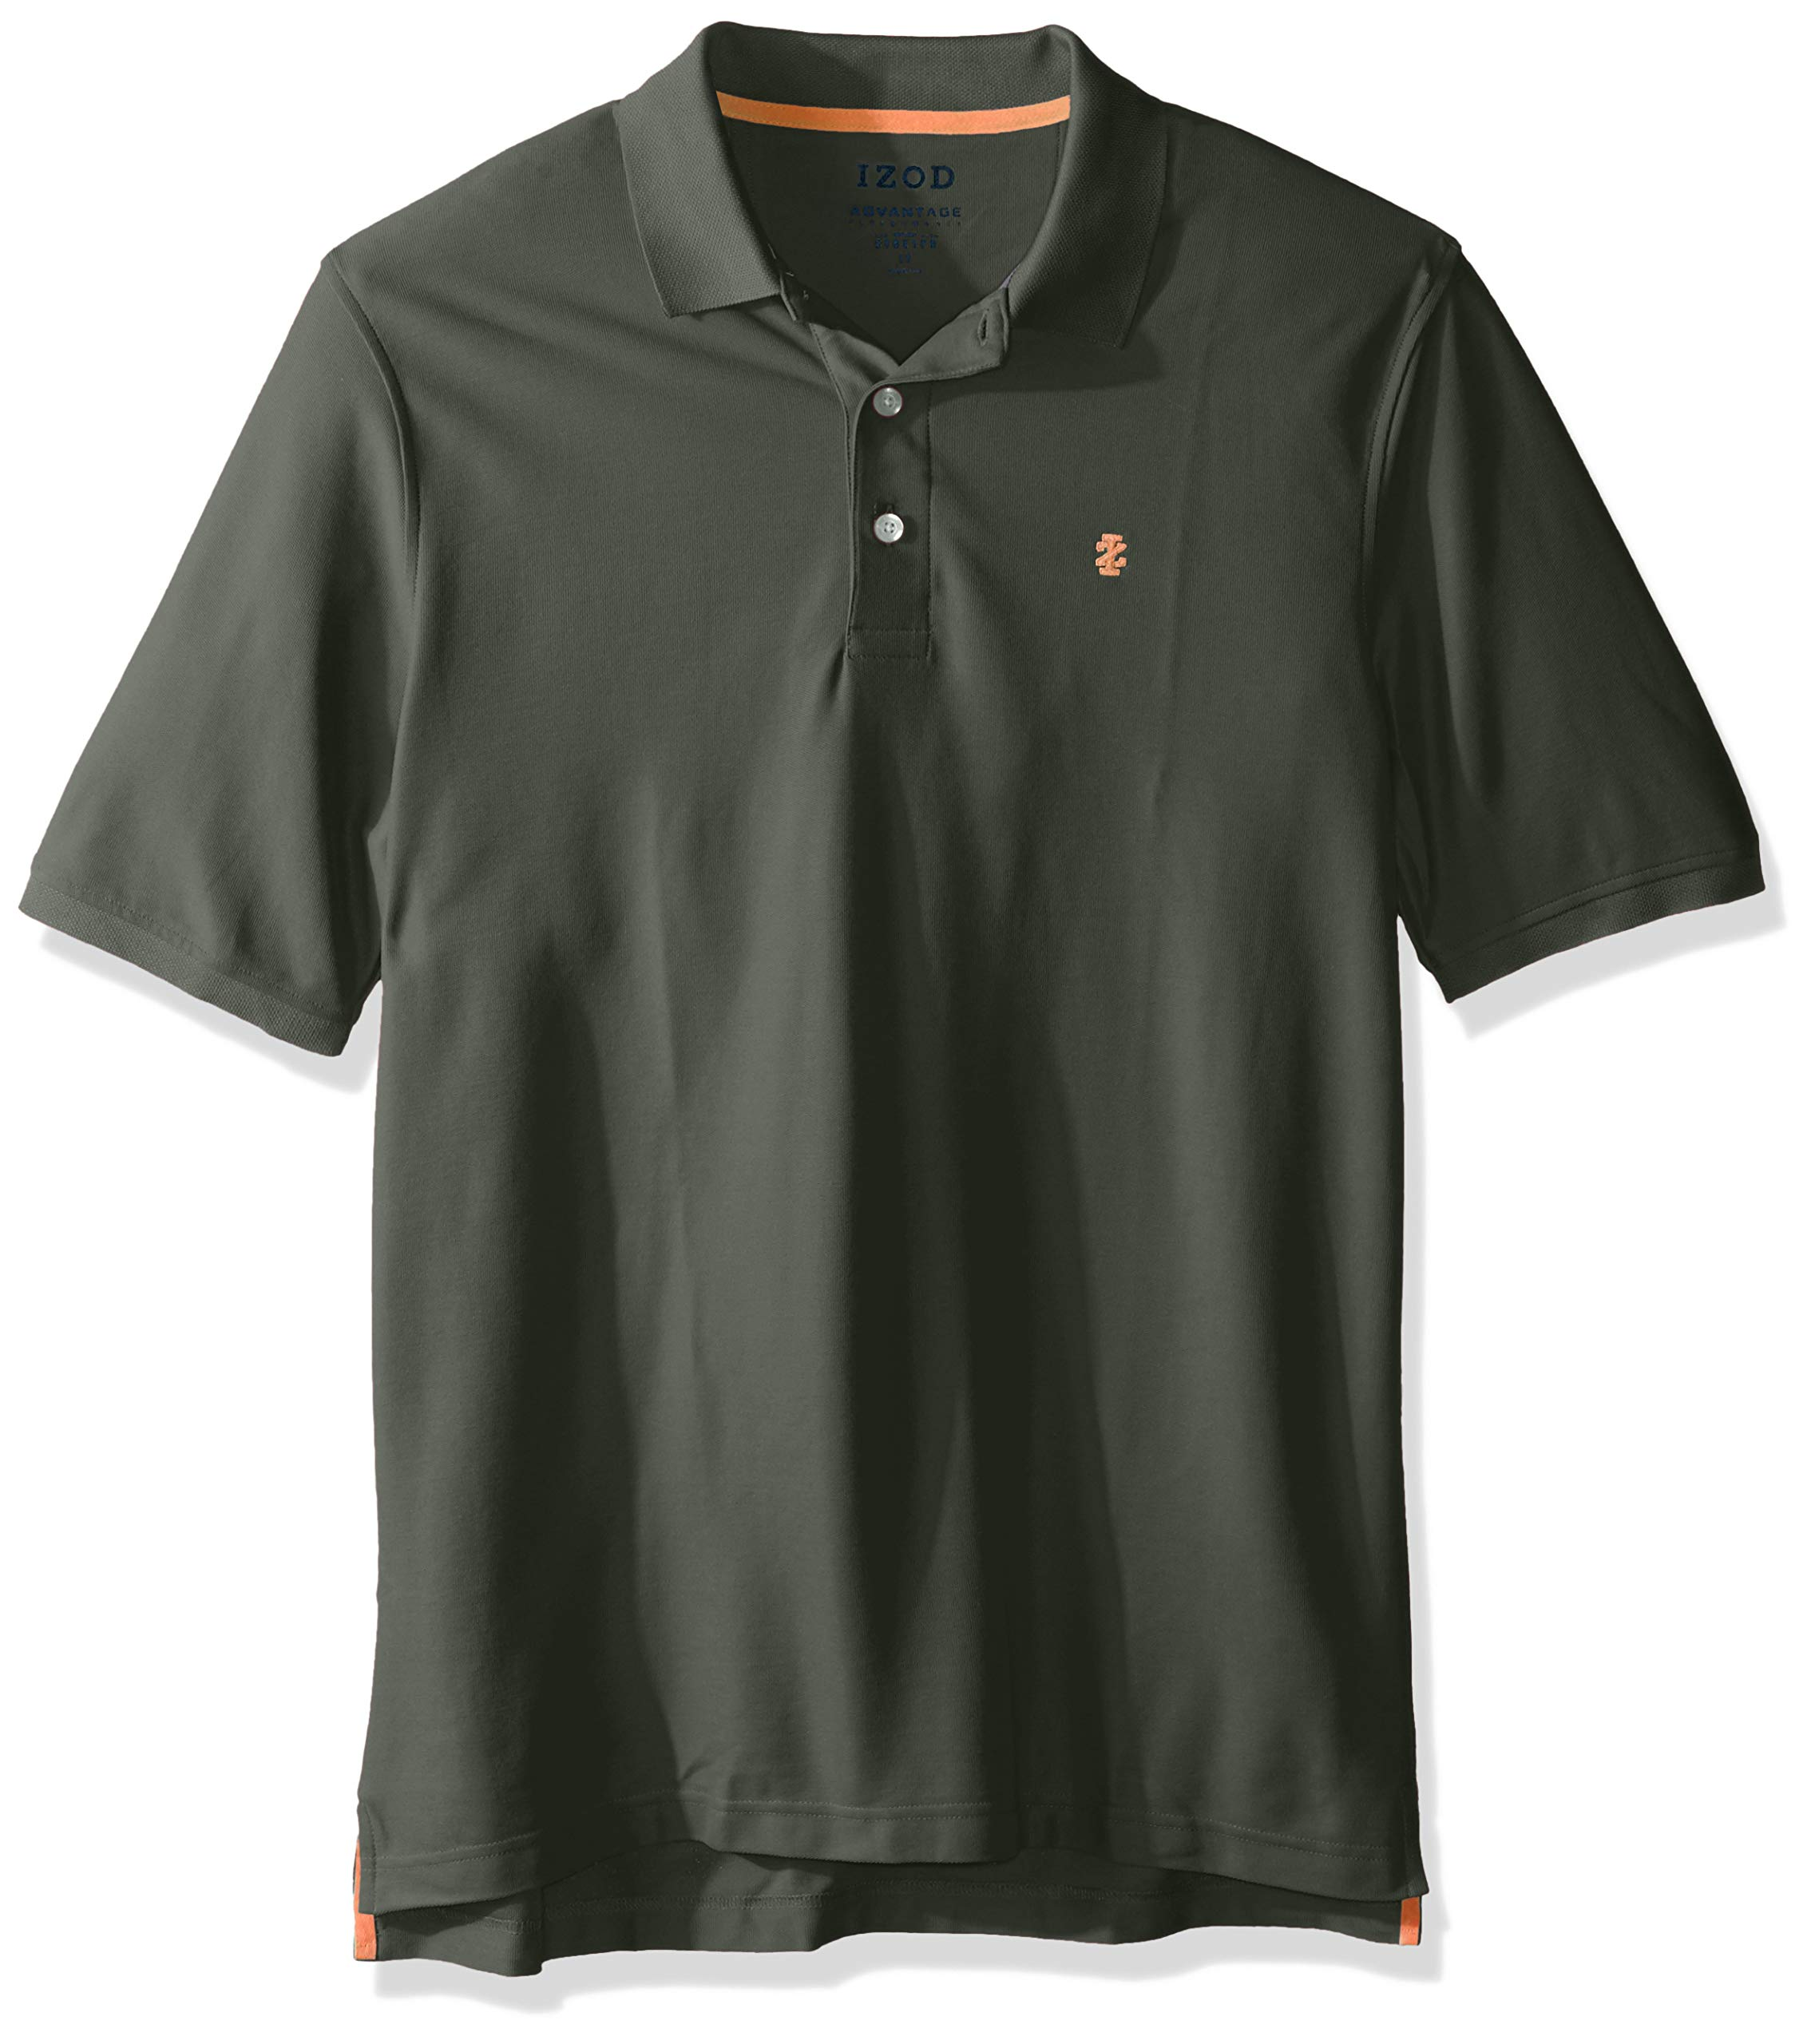 IZOD Men's Big and Tall Advantage Performance Short Sleeve Solid Polo Shirt, thyme, 2X-Large Tall